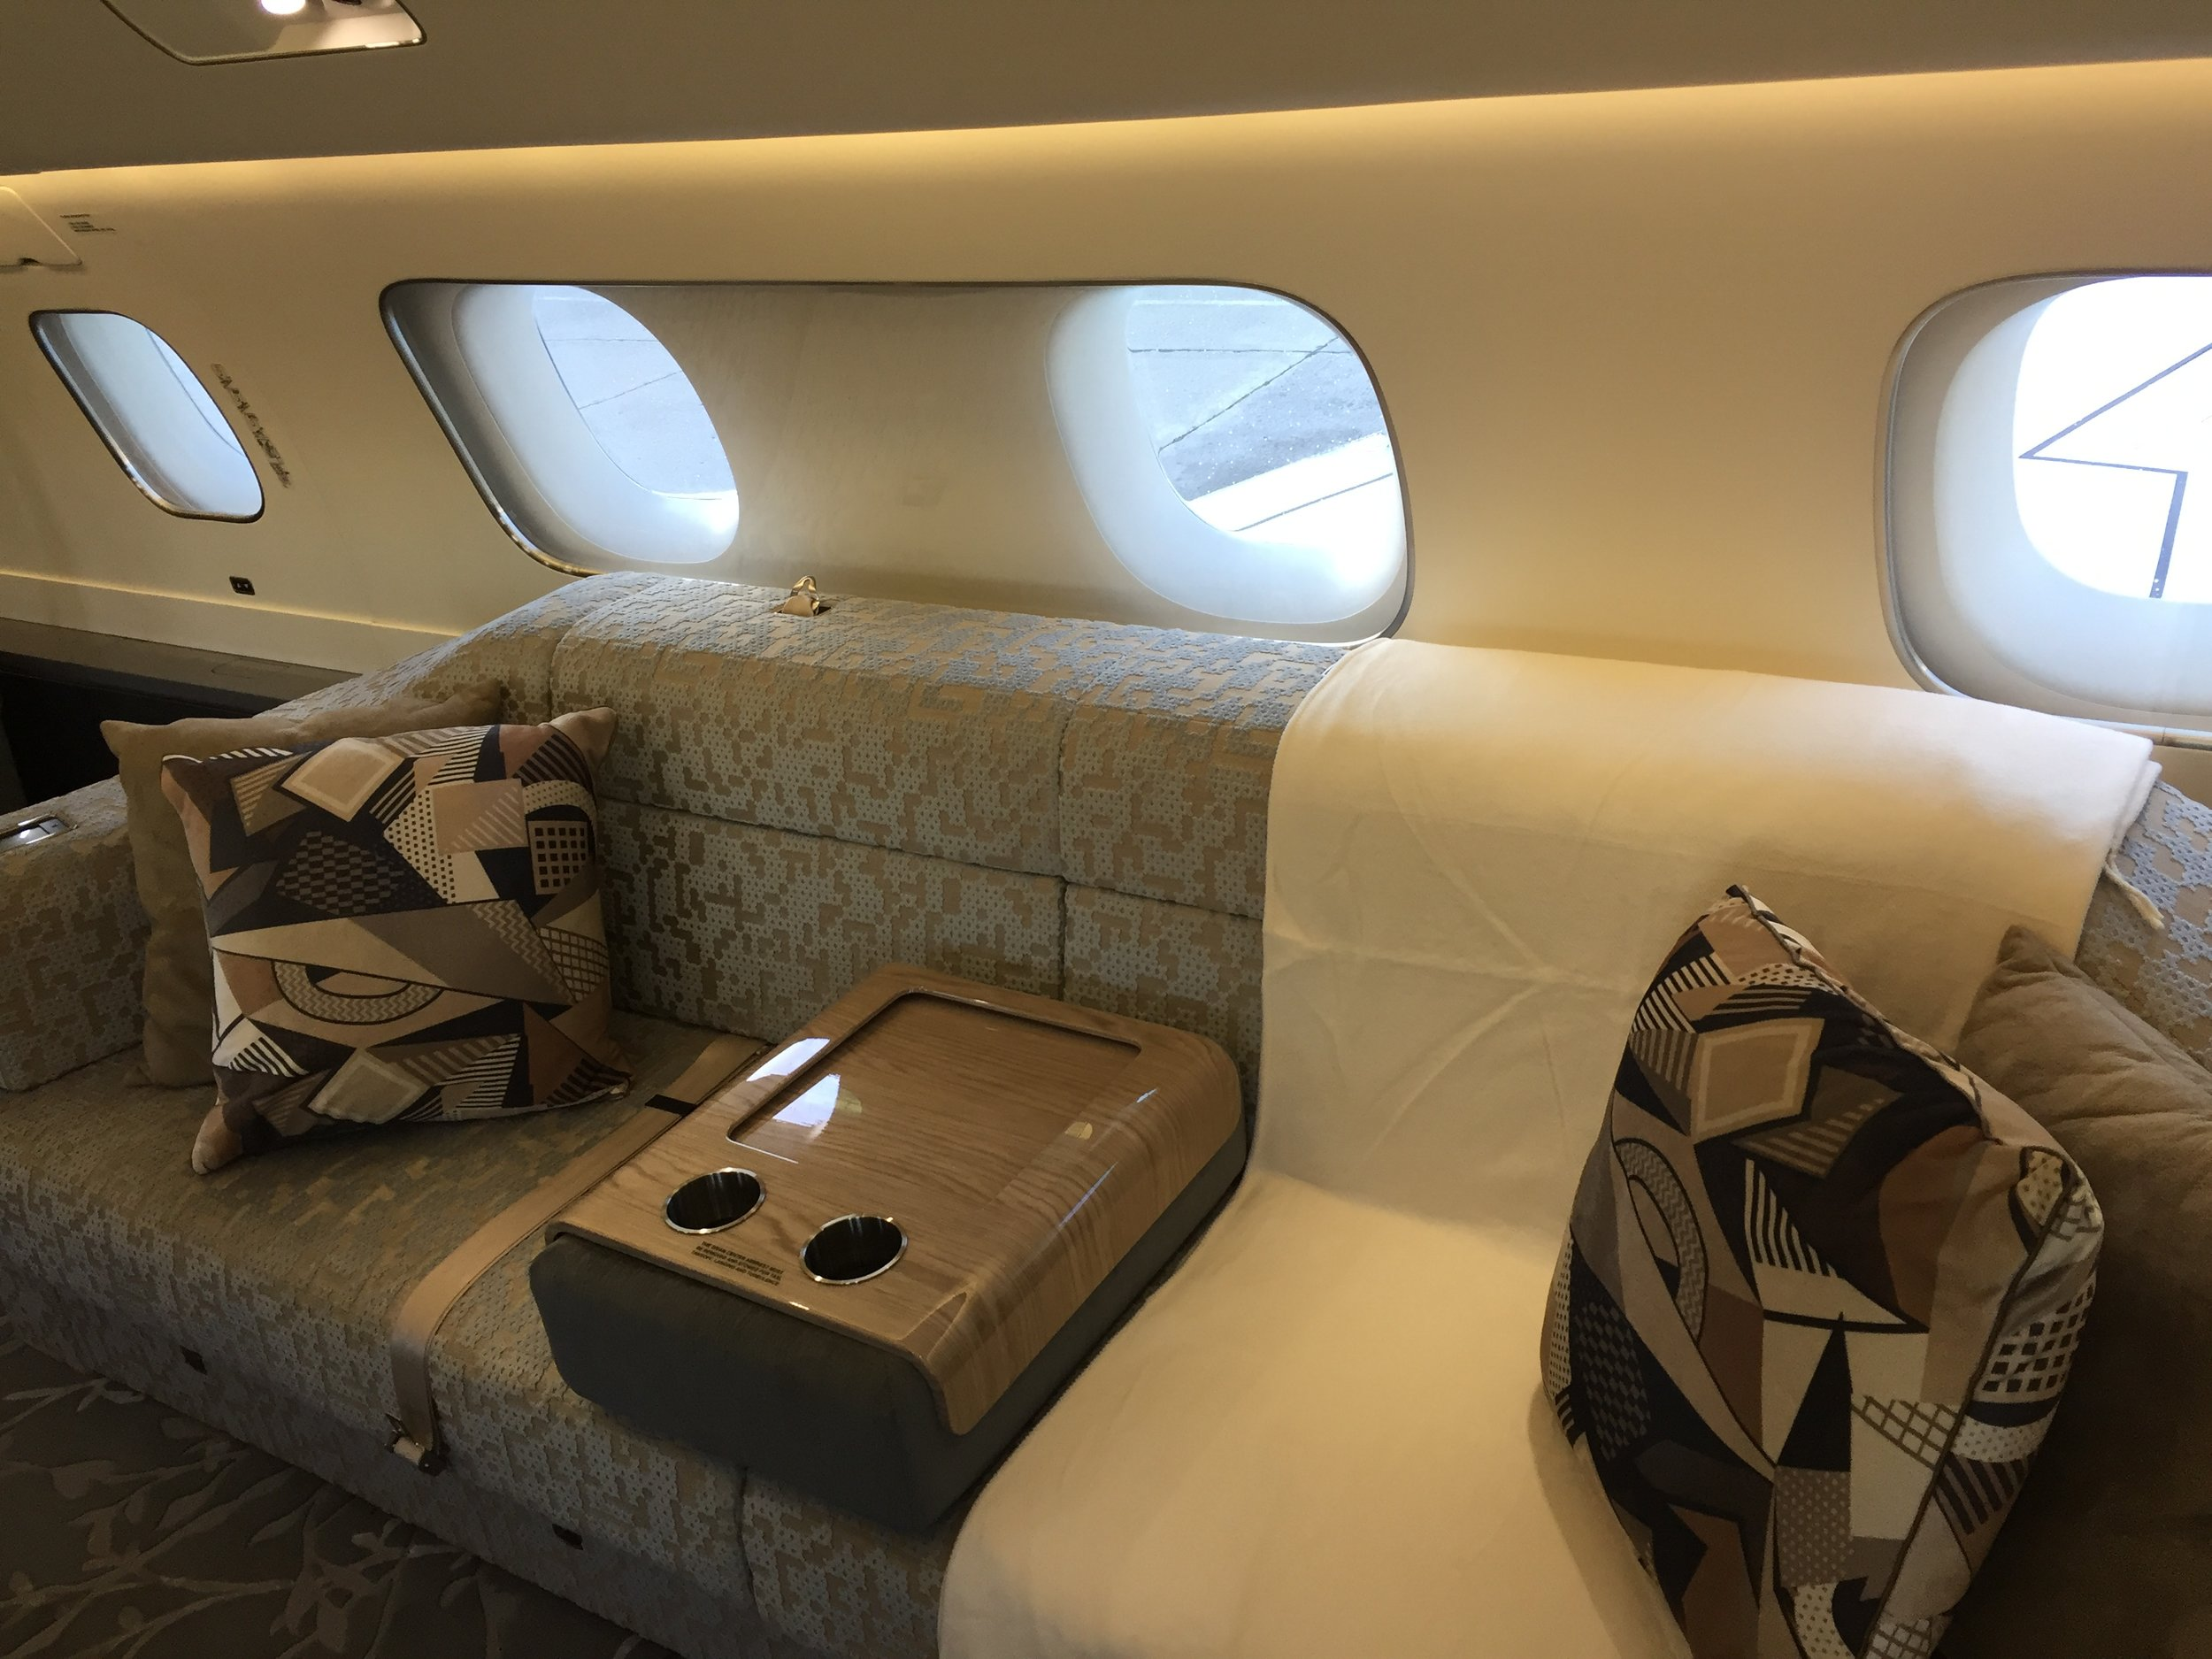 There is also a sofa towards the middle of the cabin